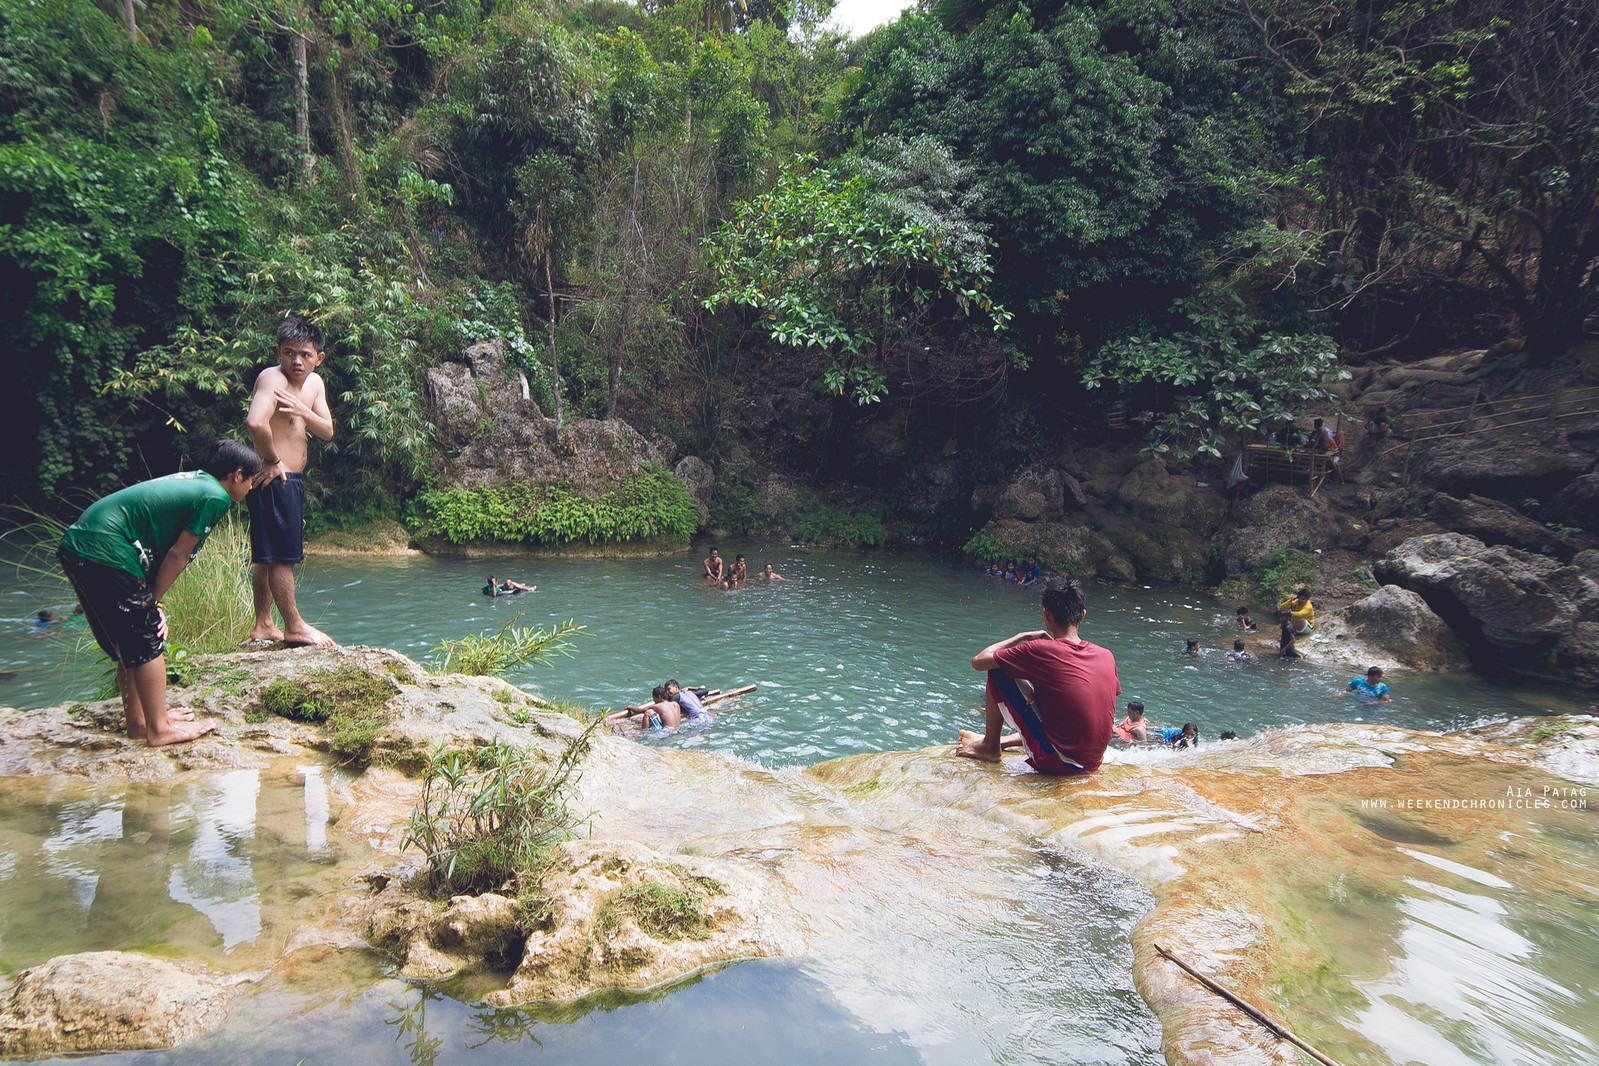 The dirty Bolinao Falls which isn't evident in this photo. Don't go to this place. It's expensive and not worth it.